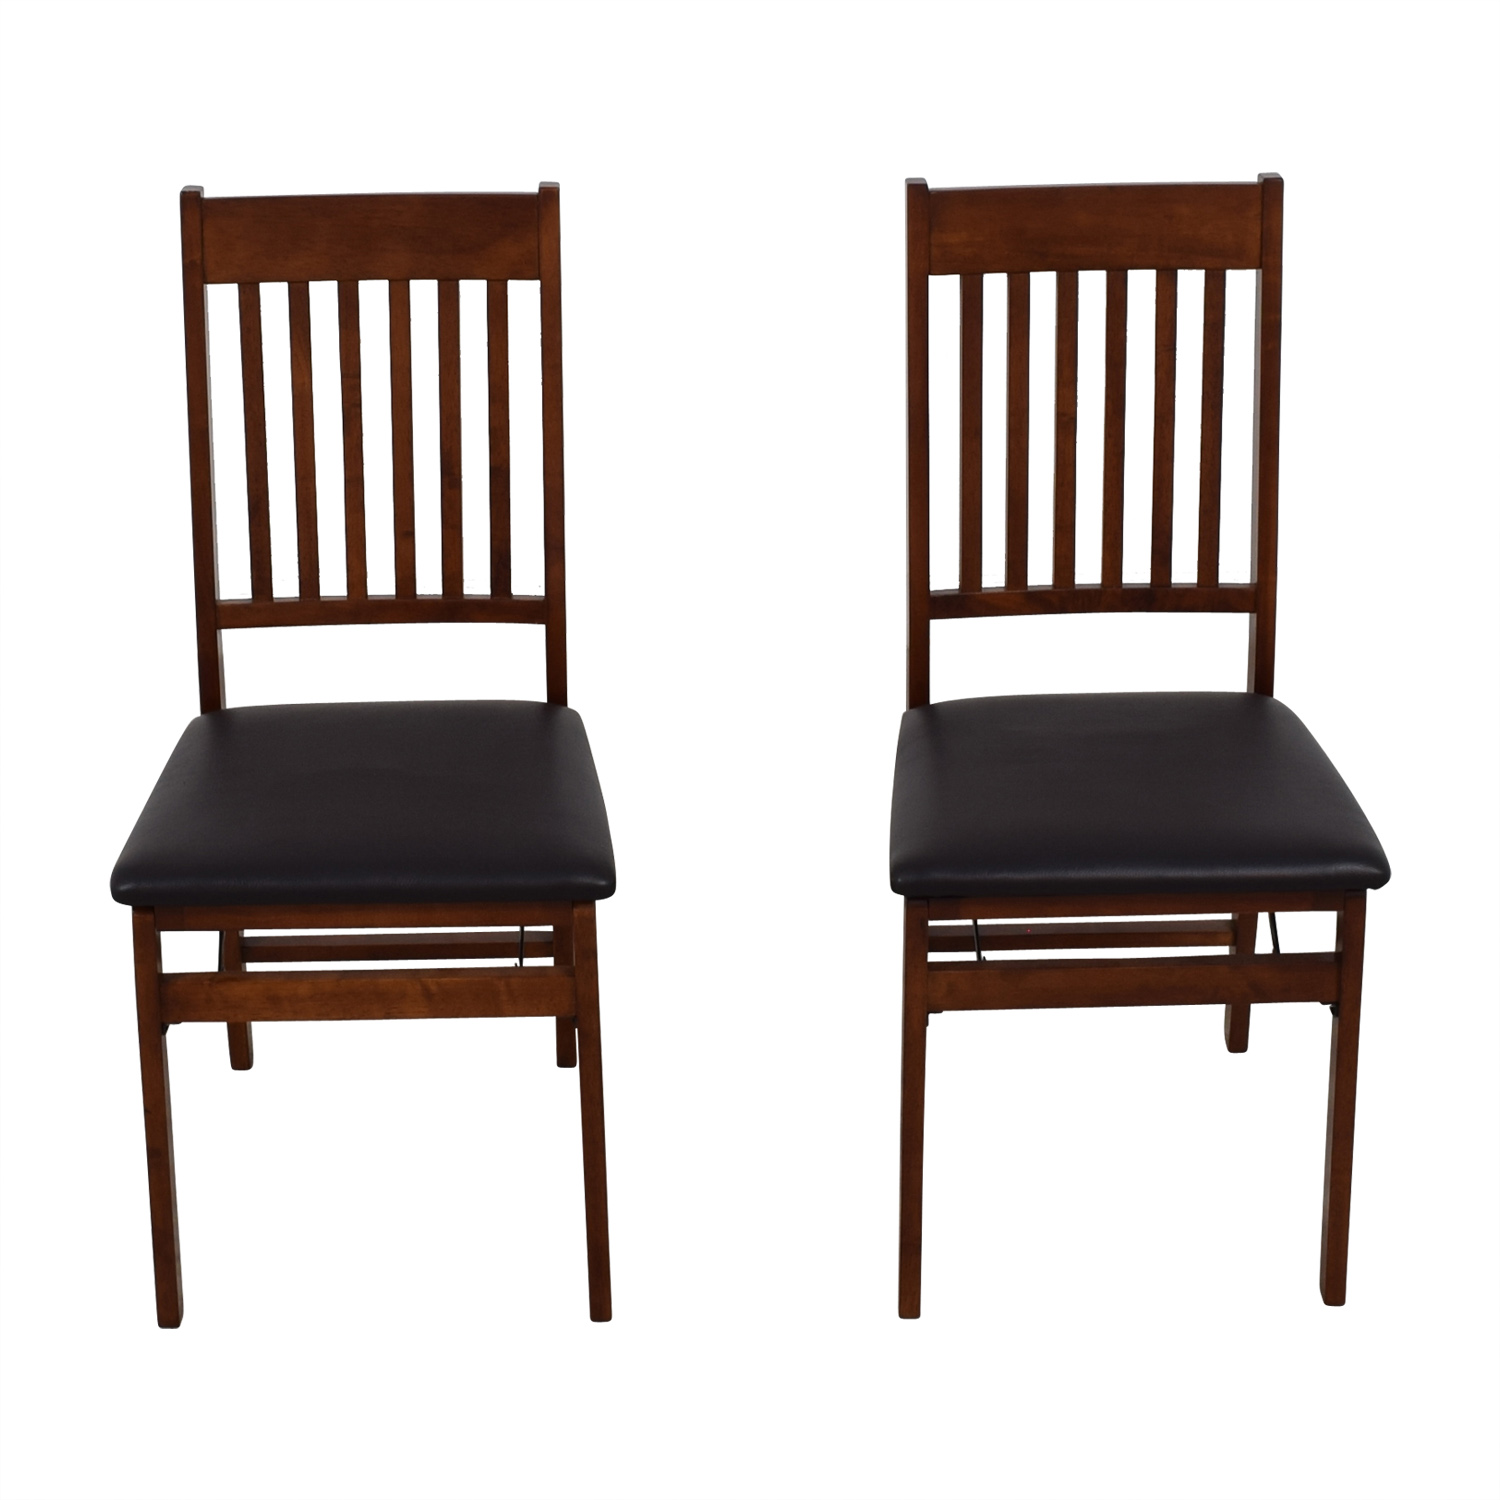 Linon Home Decor Mission Back Wood Folding Chairs Accent